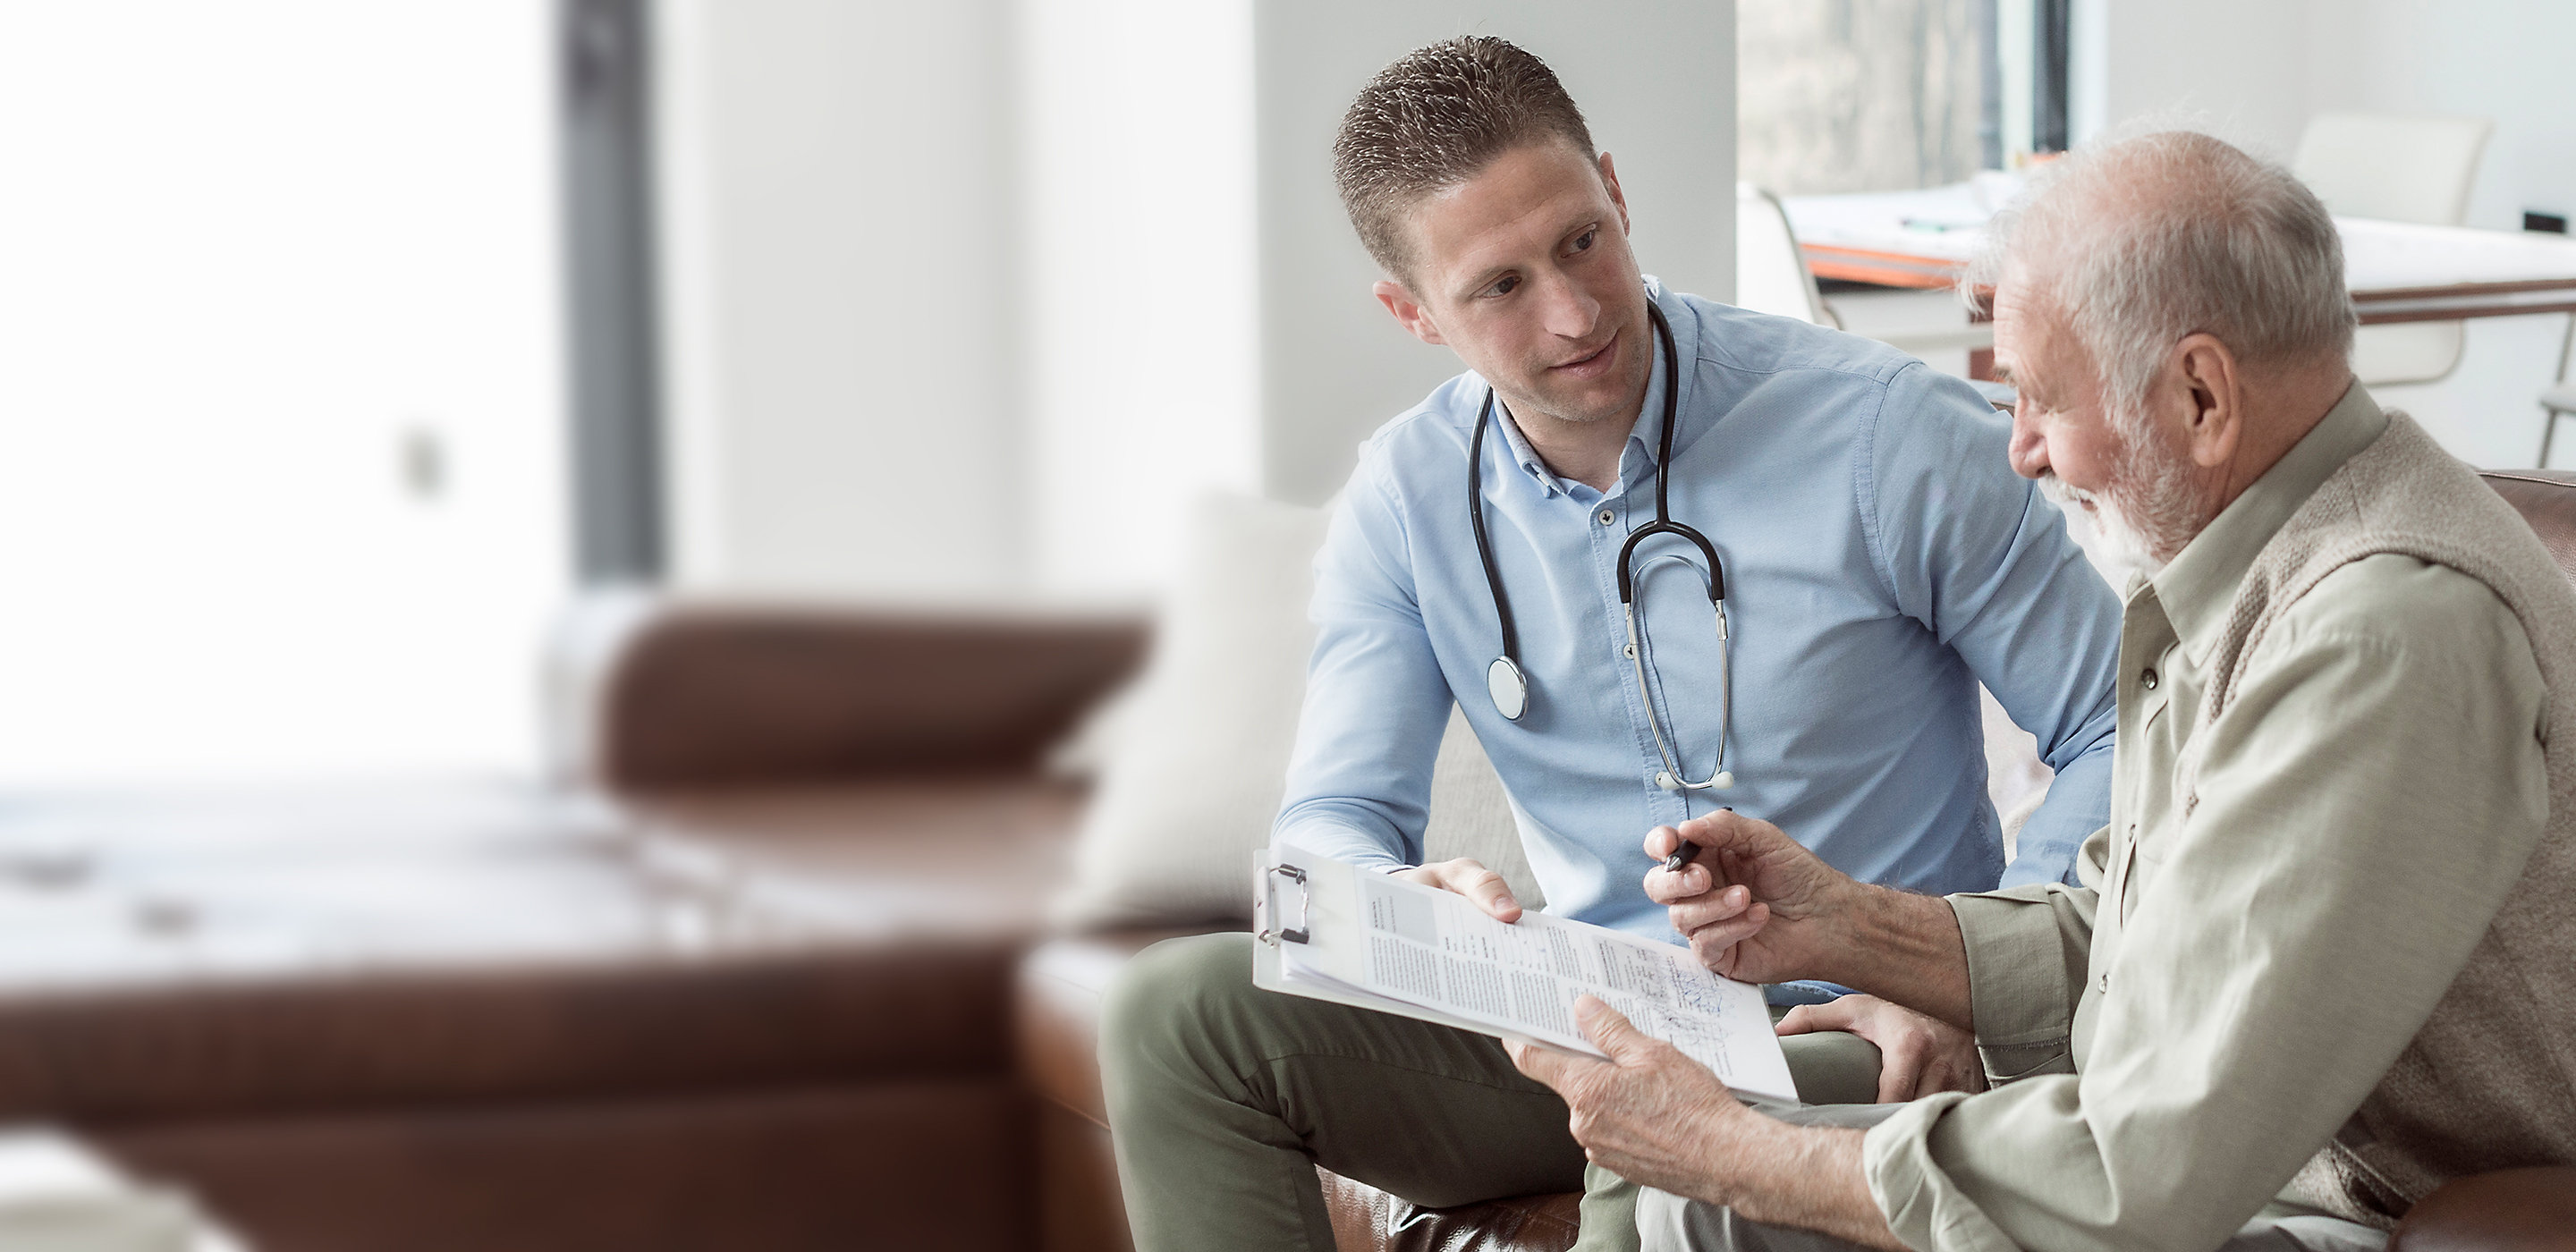 Doctor meeting with patient - Hillrom Financial Services